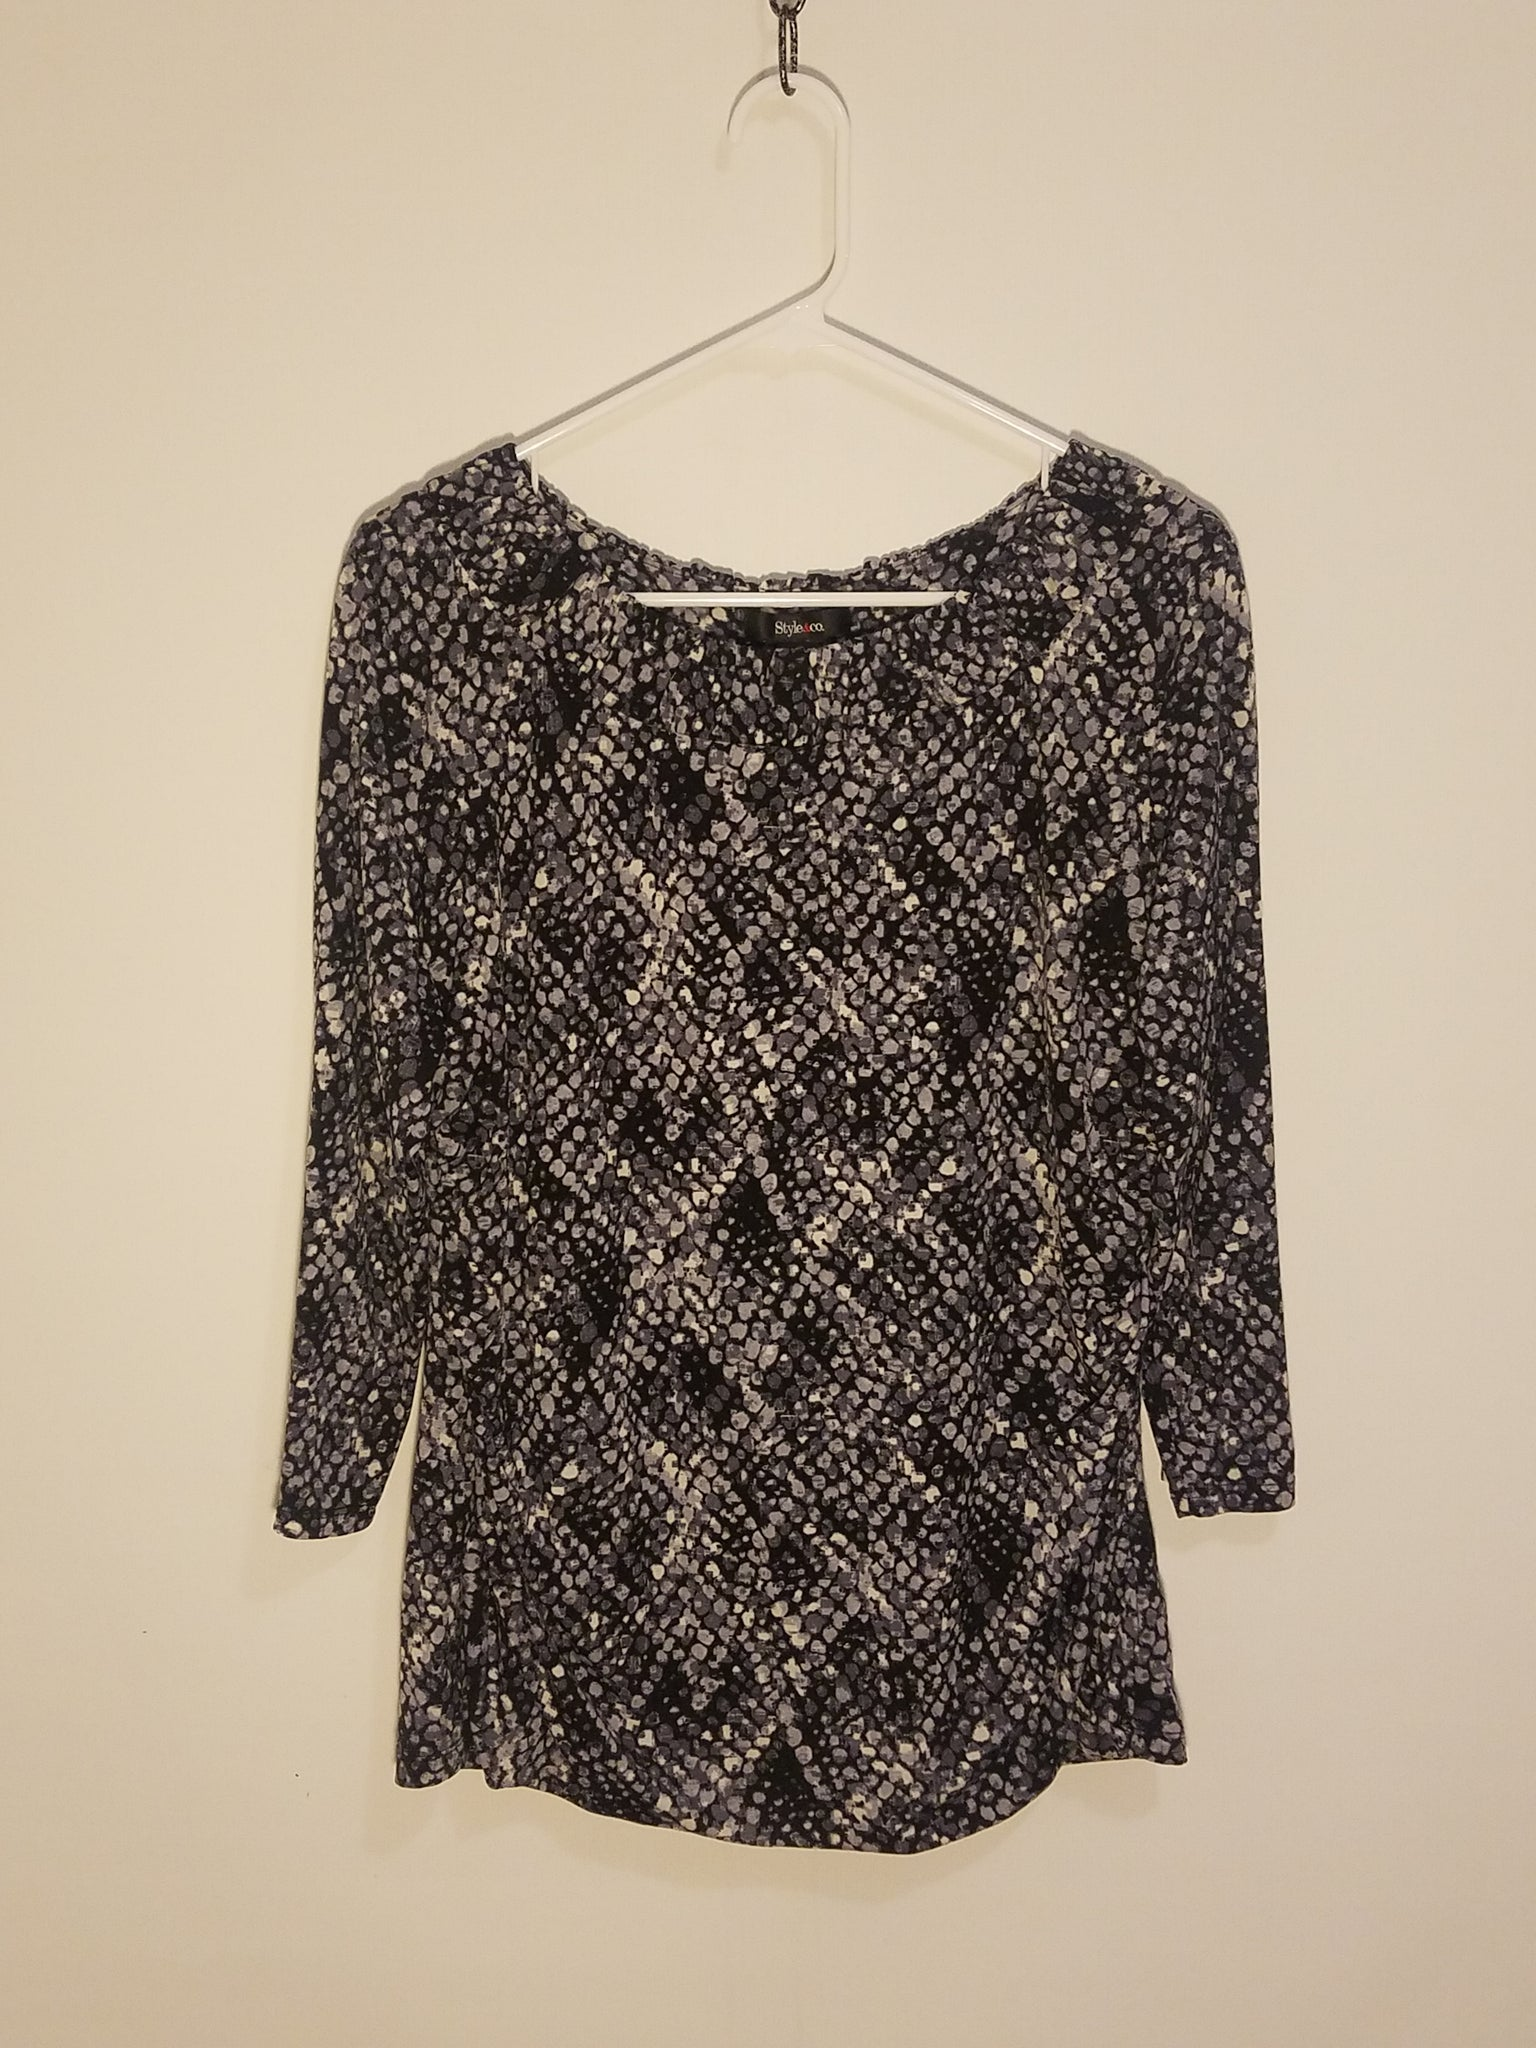 Style&co Top - XL